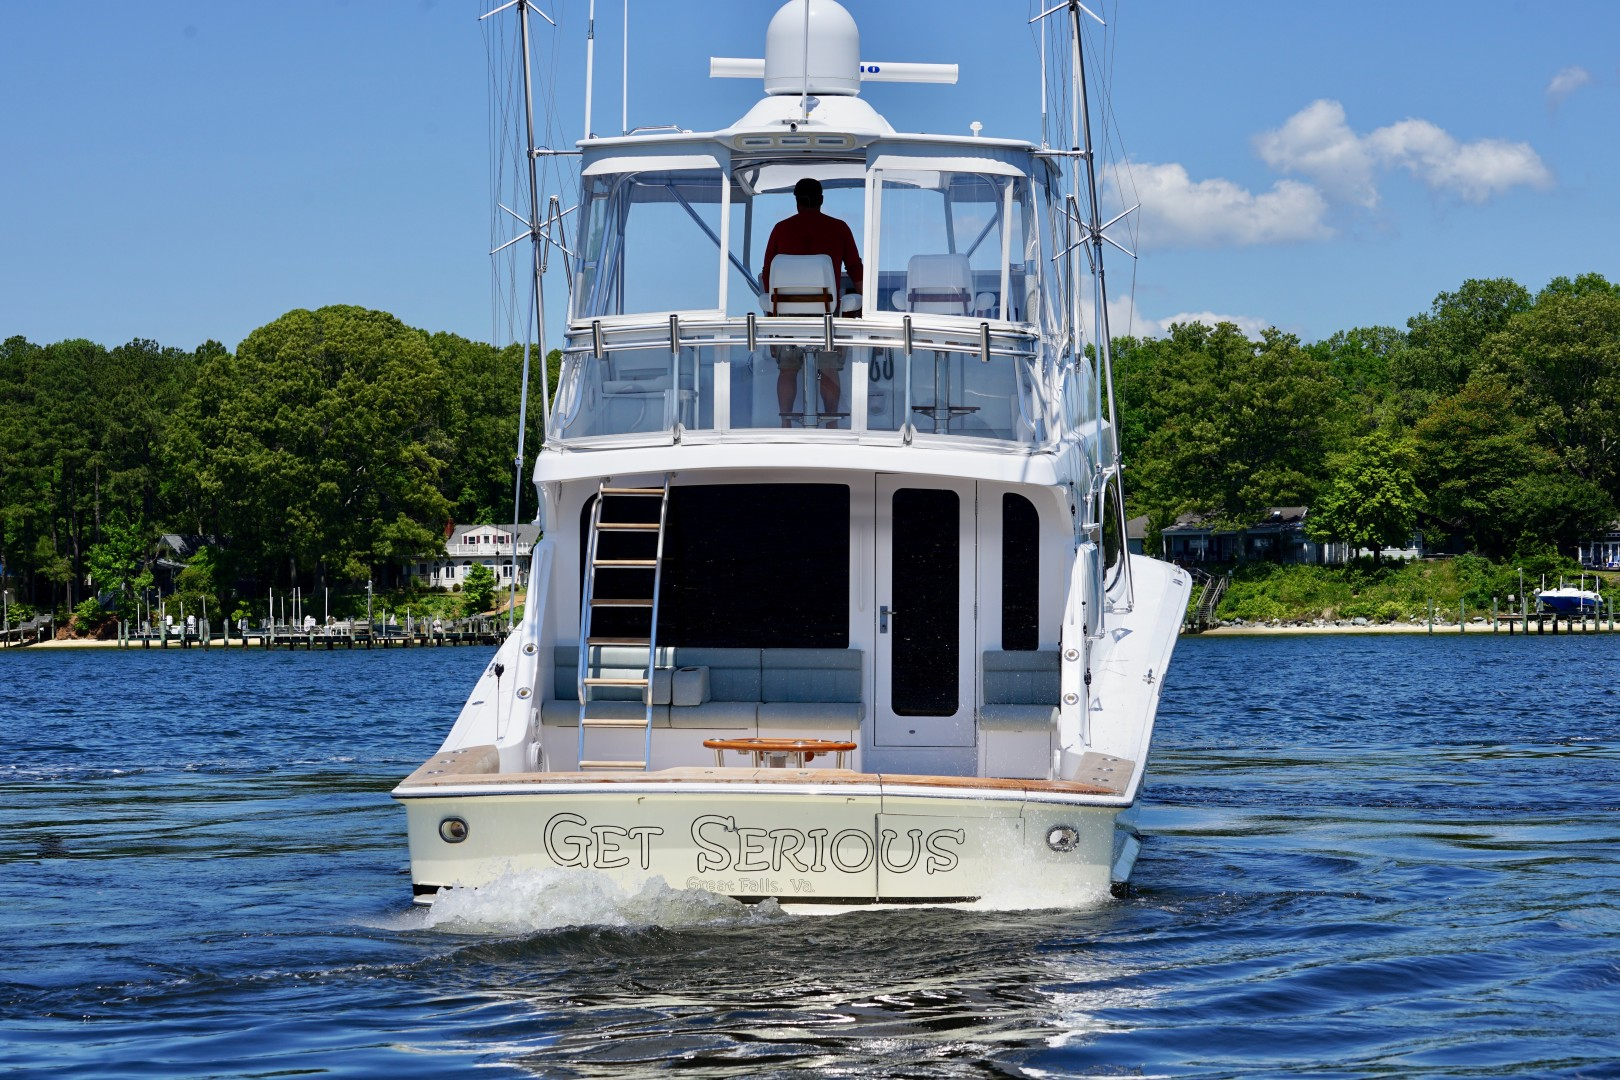 Hatteras 54 - Get Serious - Aft Profile